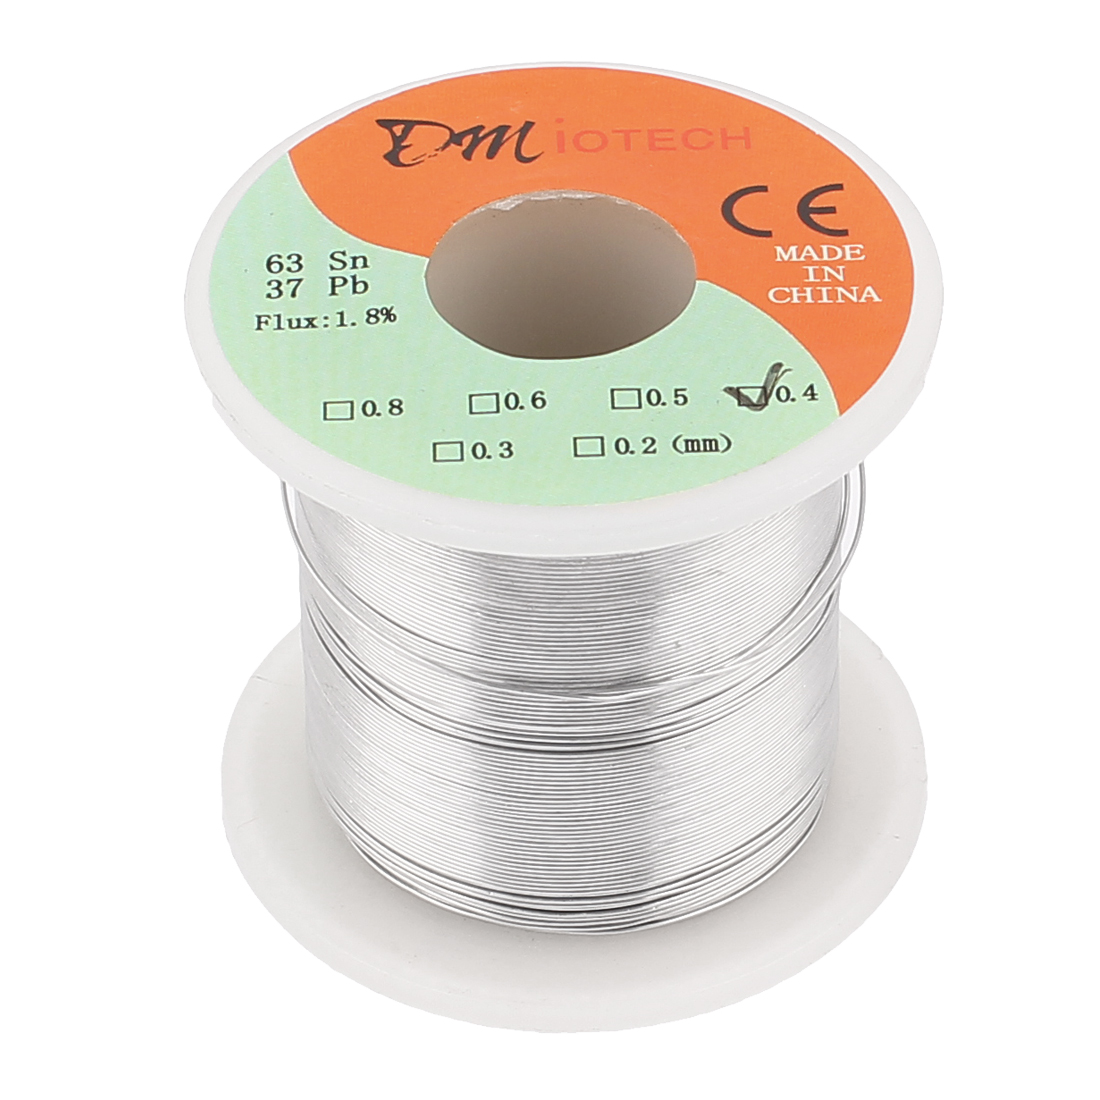 0.4mm Rosin Core Solder Tin Lead Solder Wire 63/37 for Electrical Soldering 200g